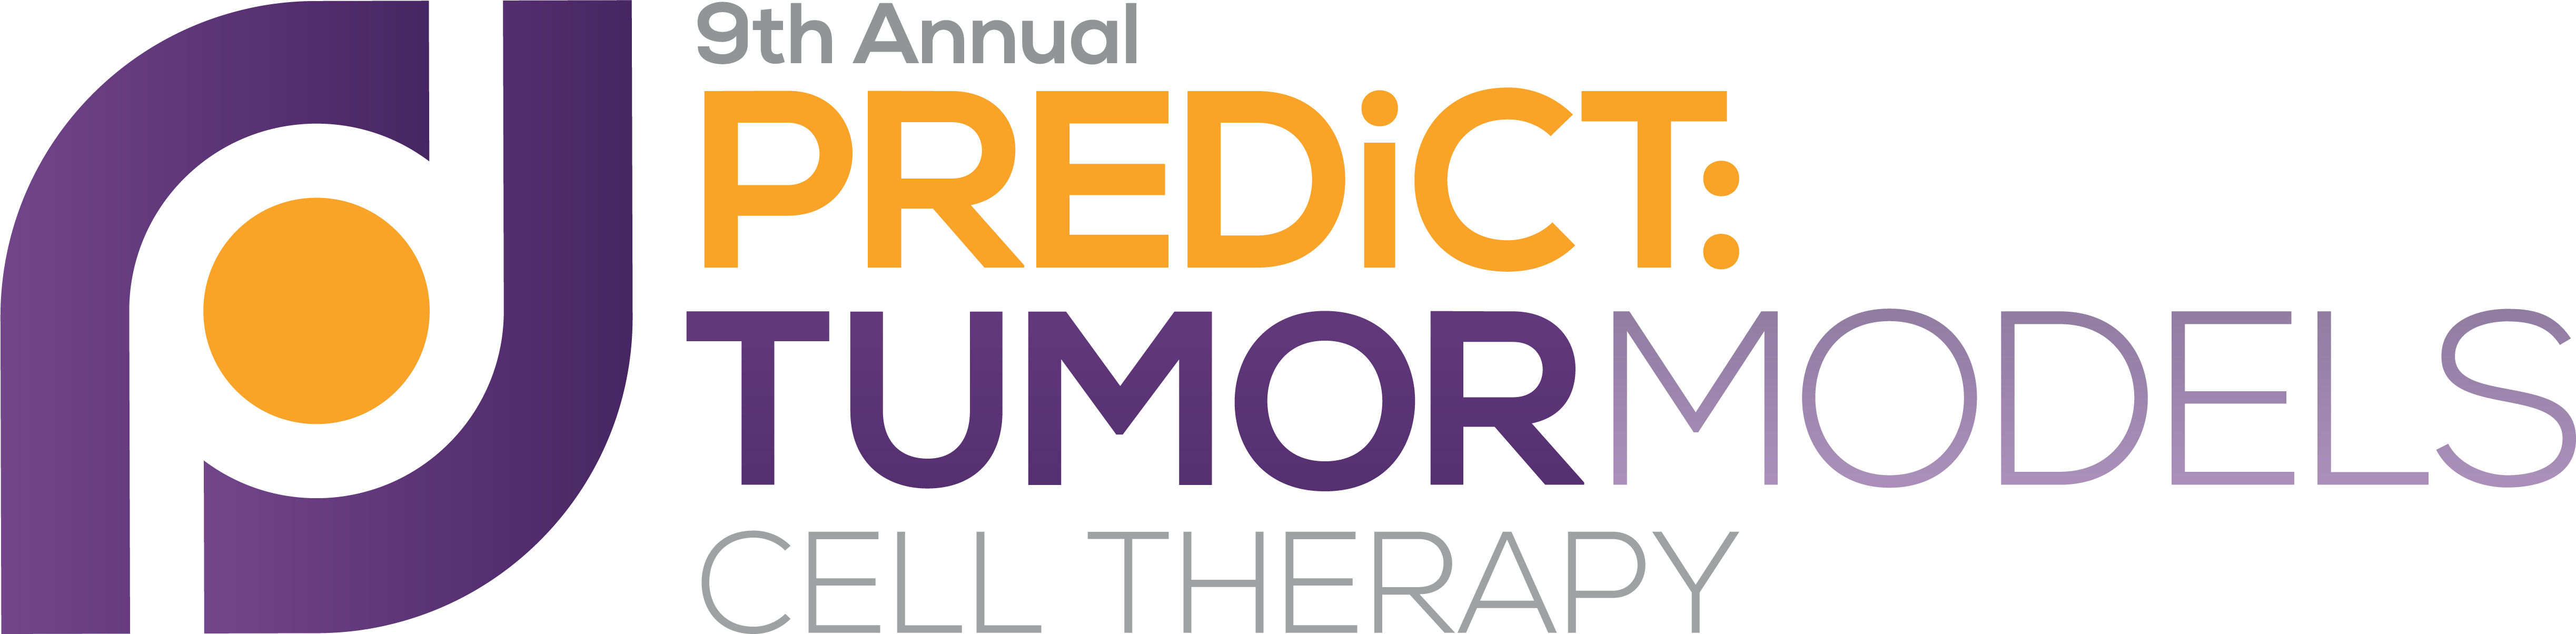 HW210203 PREDiCT Tumor Models Cell Therapy logo_Yellow